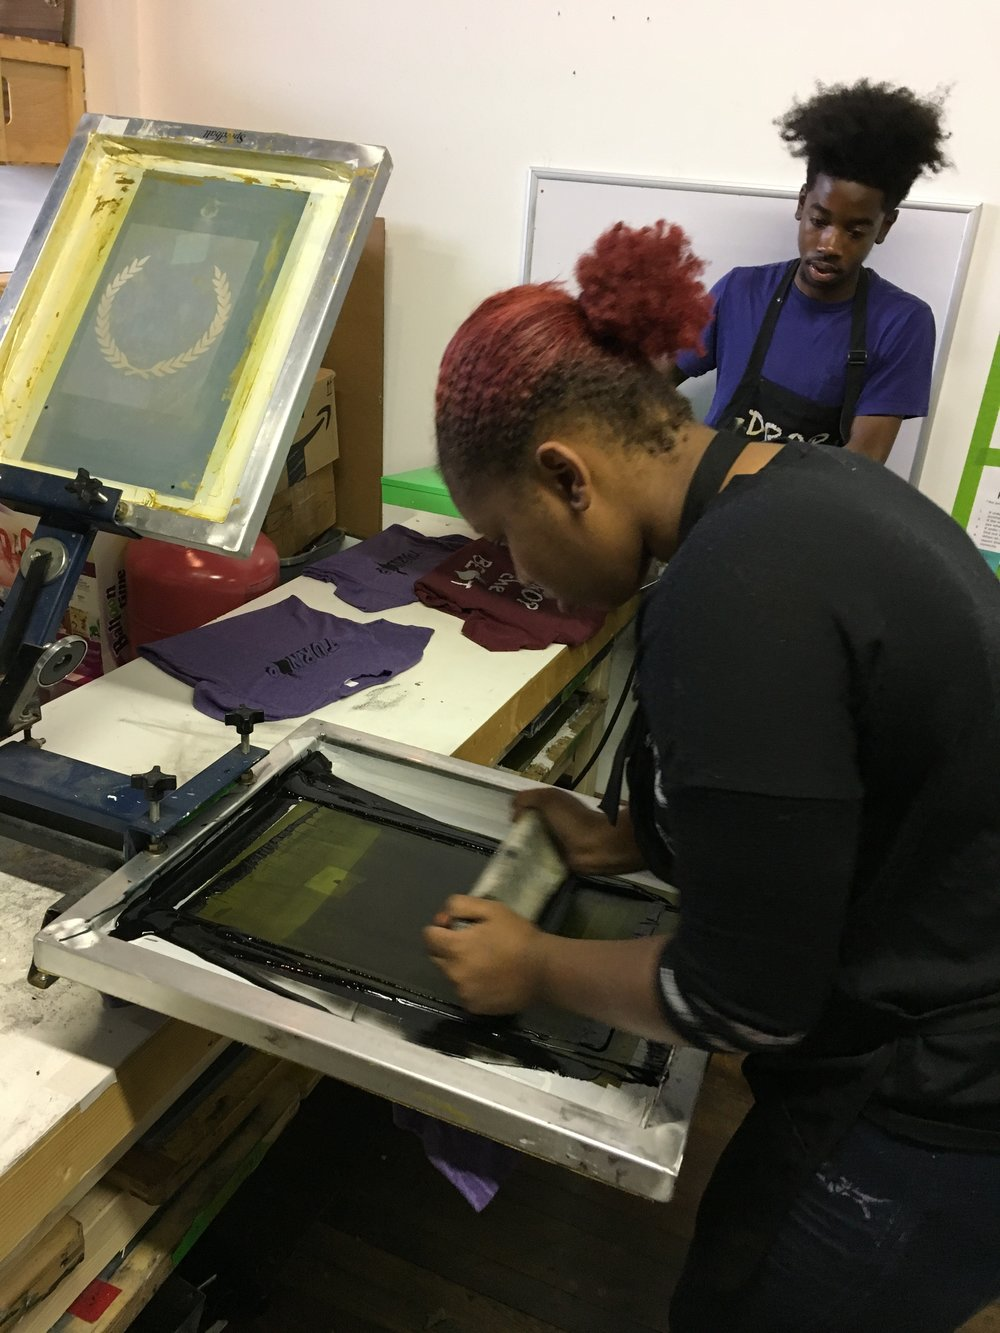 Charles teaching Arianna the ins and outs of screen printing.